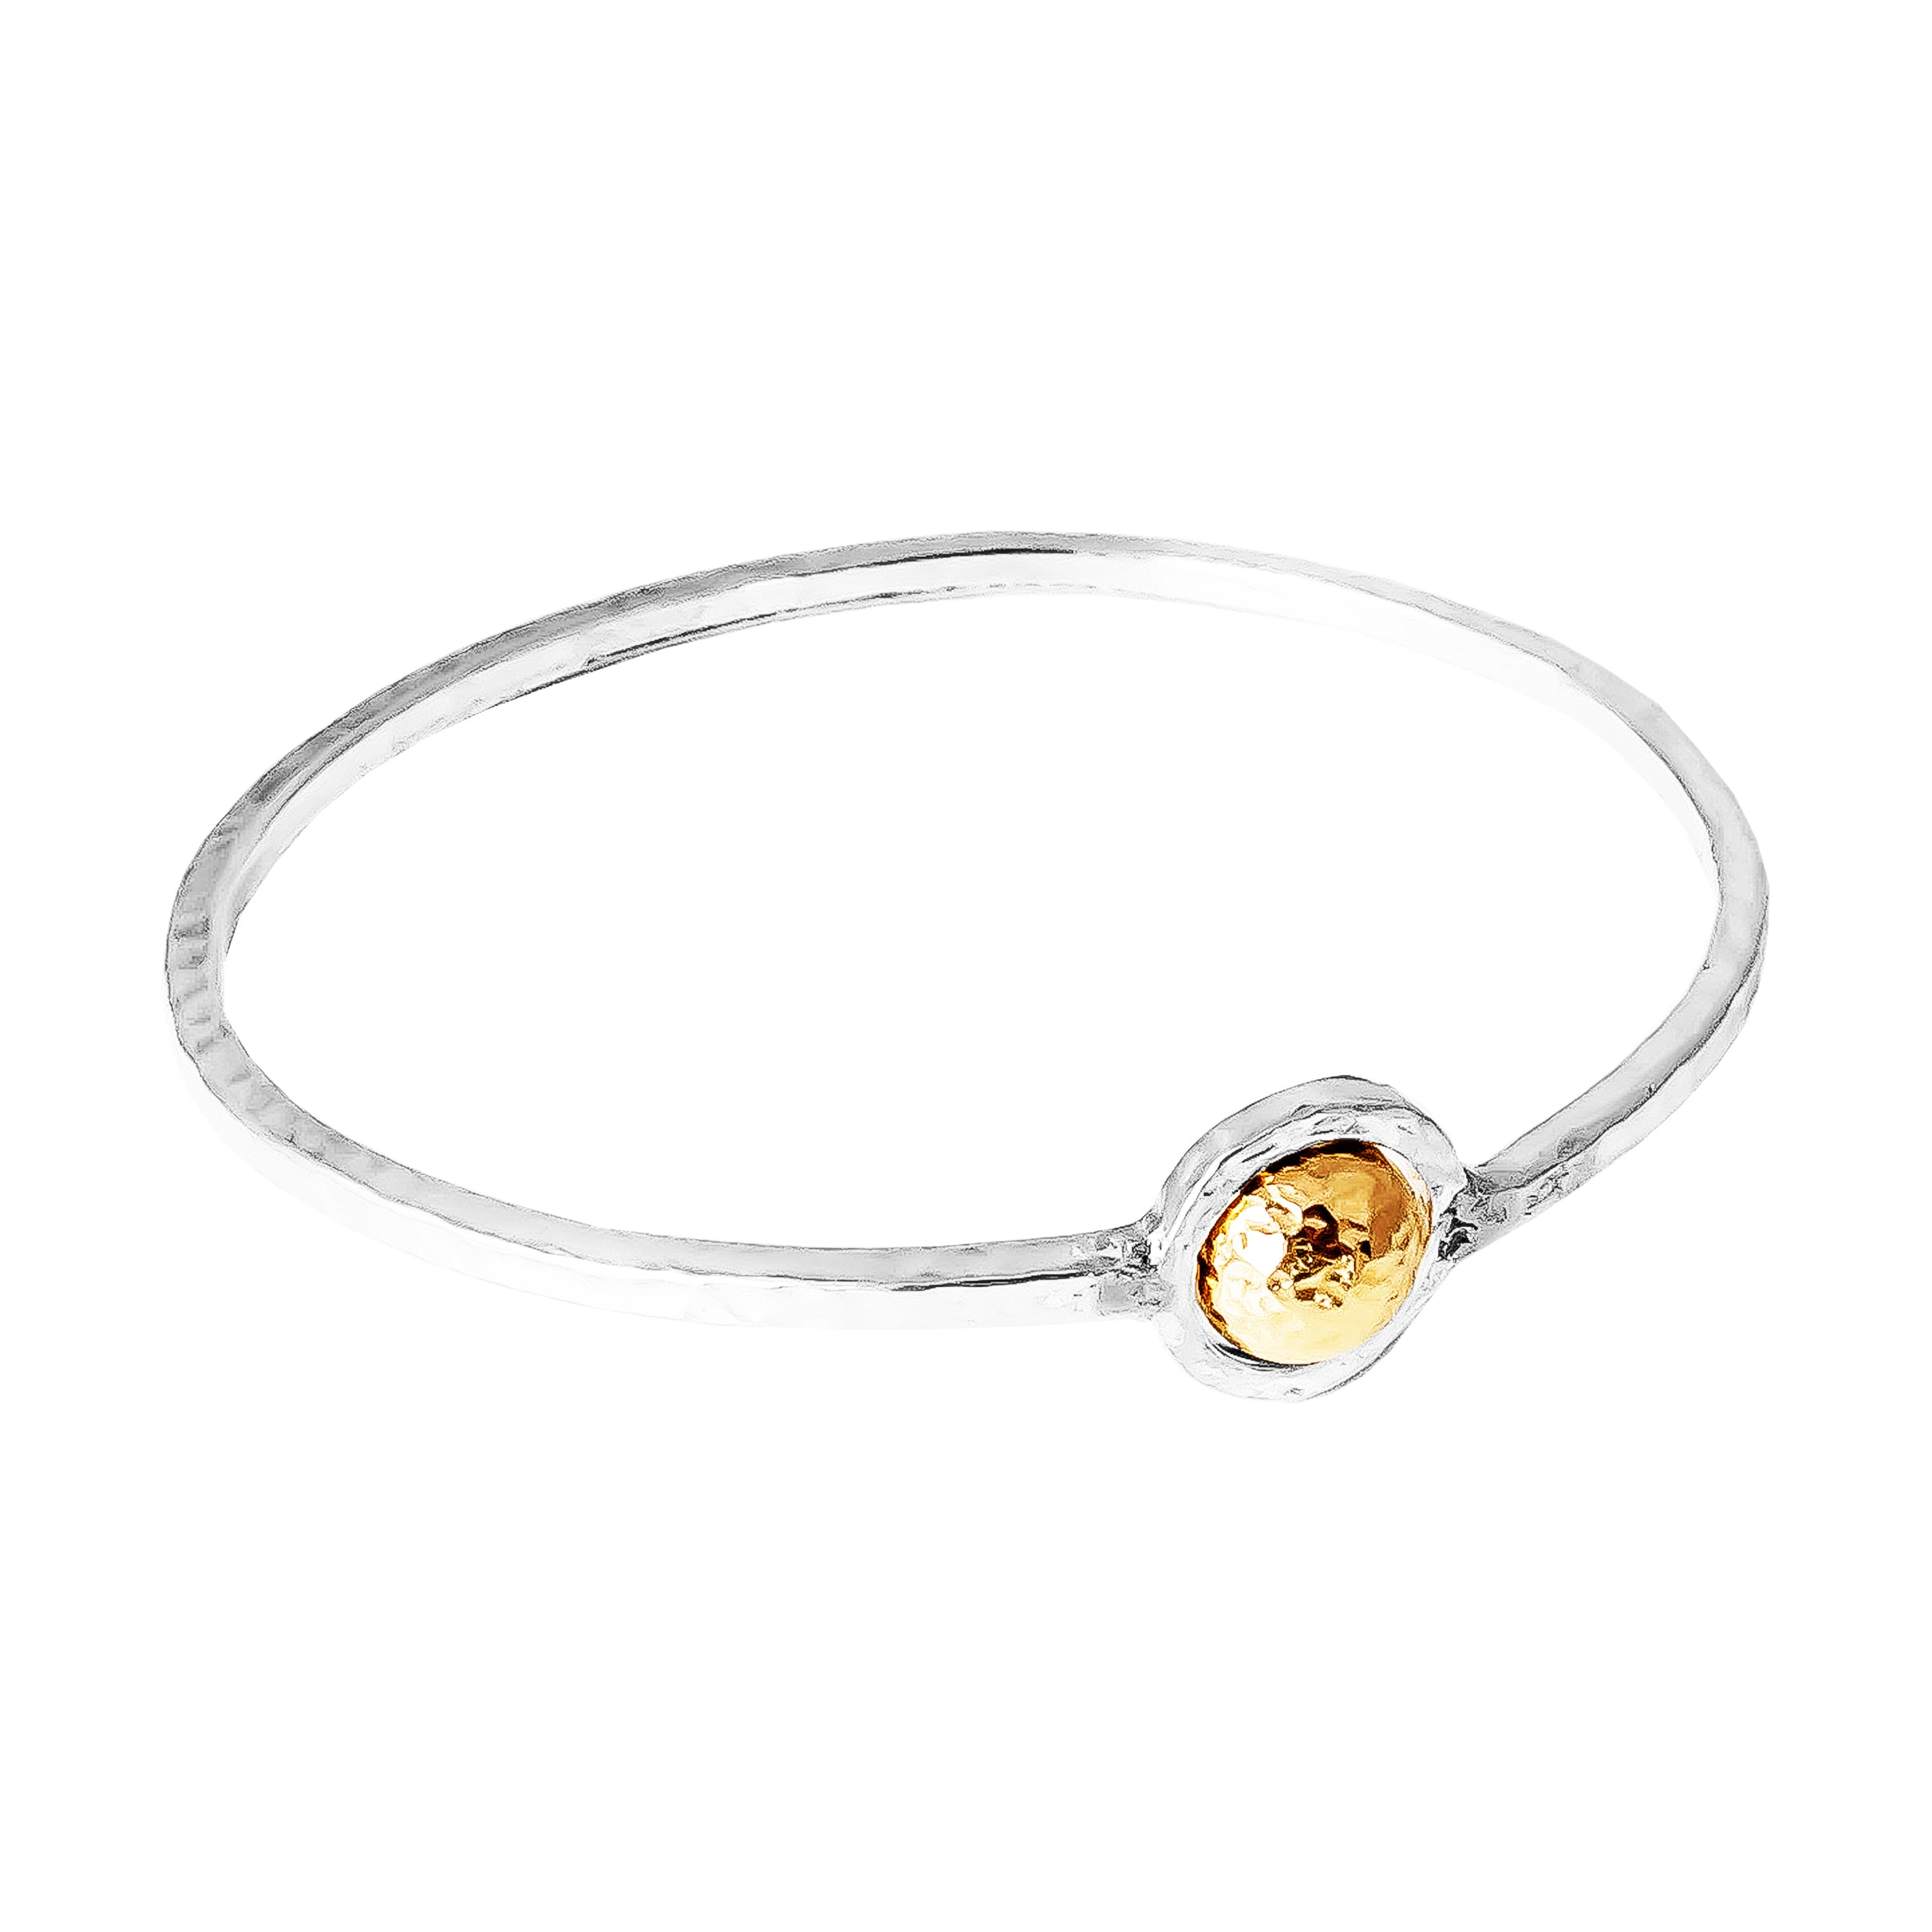 Atticus Large Feature Oval Hammered Bangle | Hammered Gold Detail